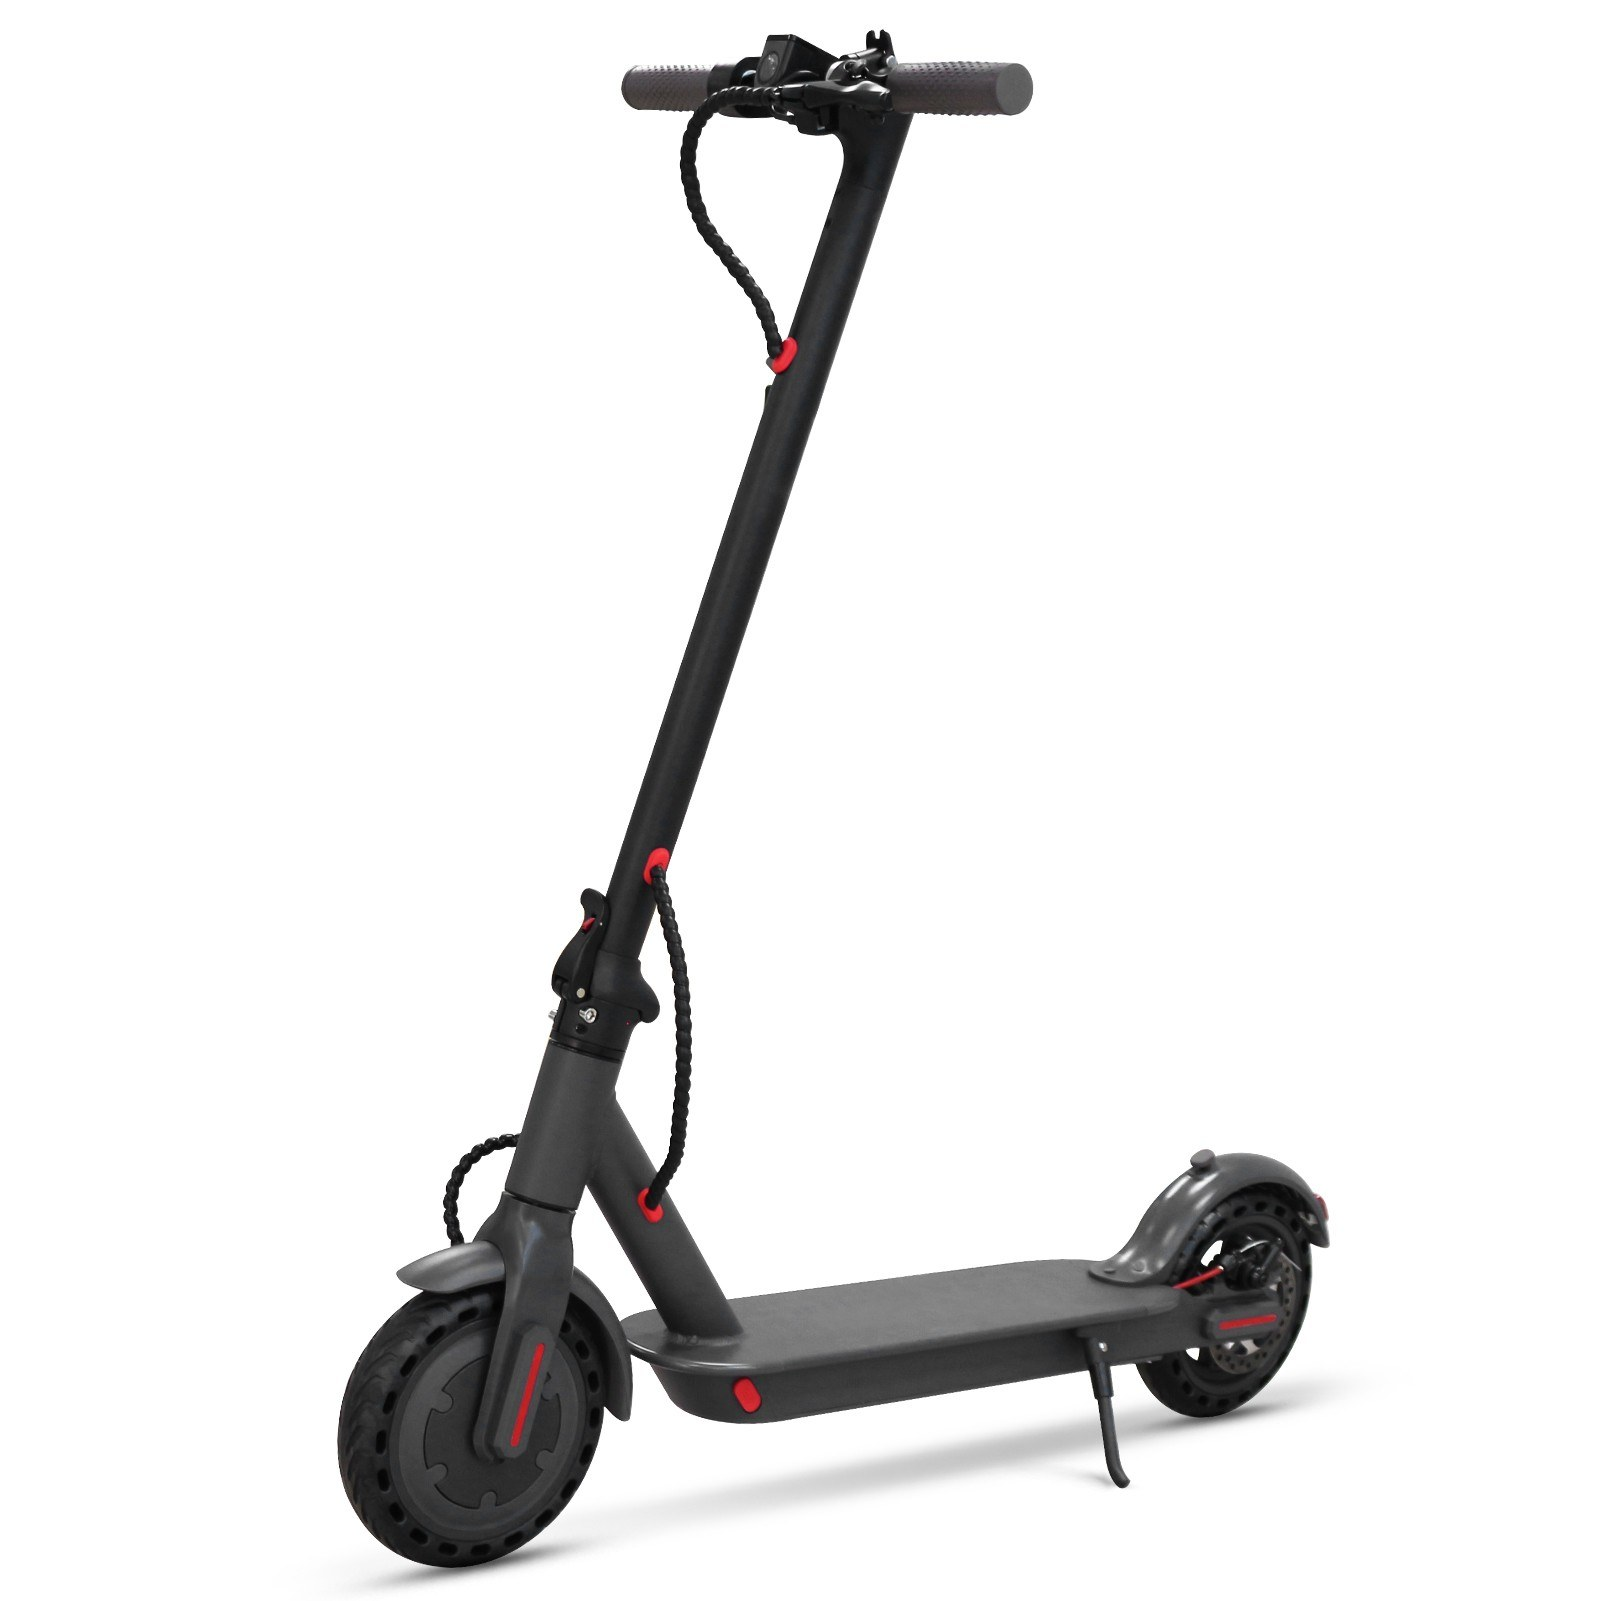 cafago.com - 40% OFF ESL85 350W 8.5 Inch Folding Electric Scooter,free shipping+$326.69